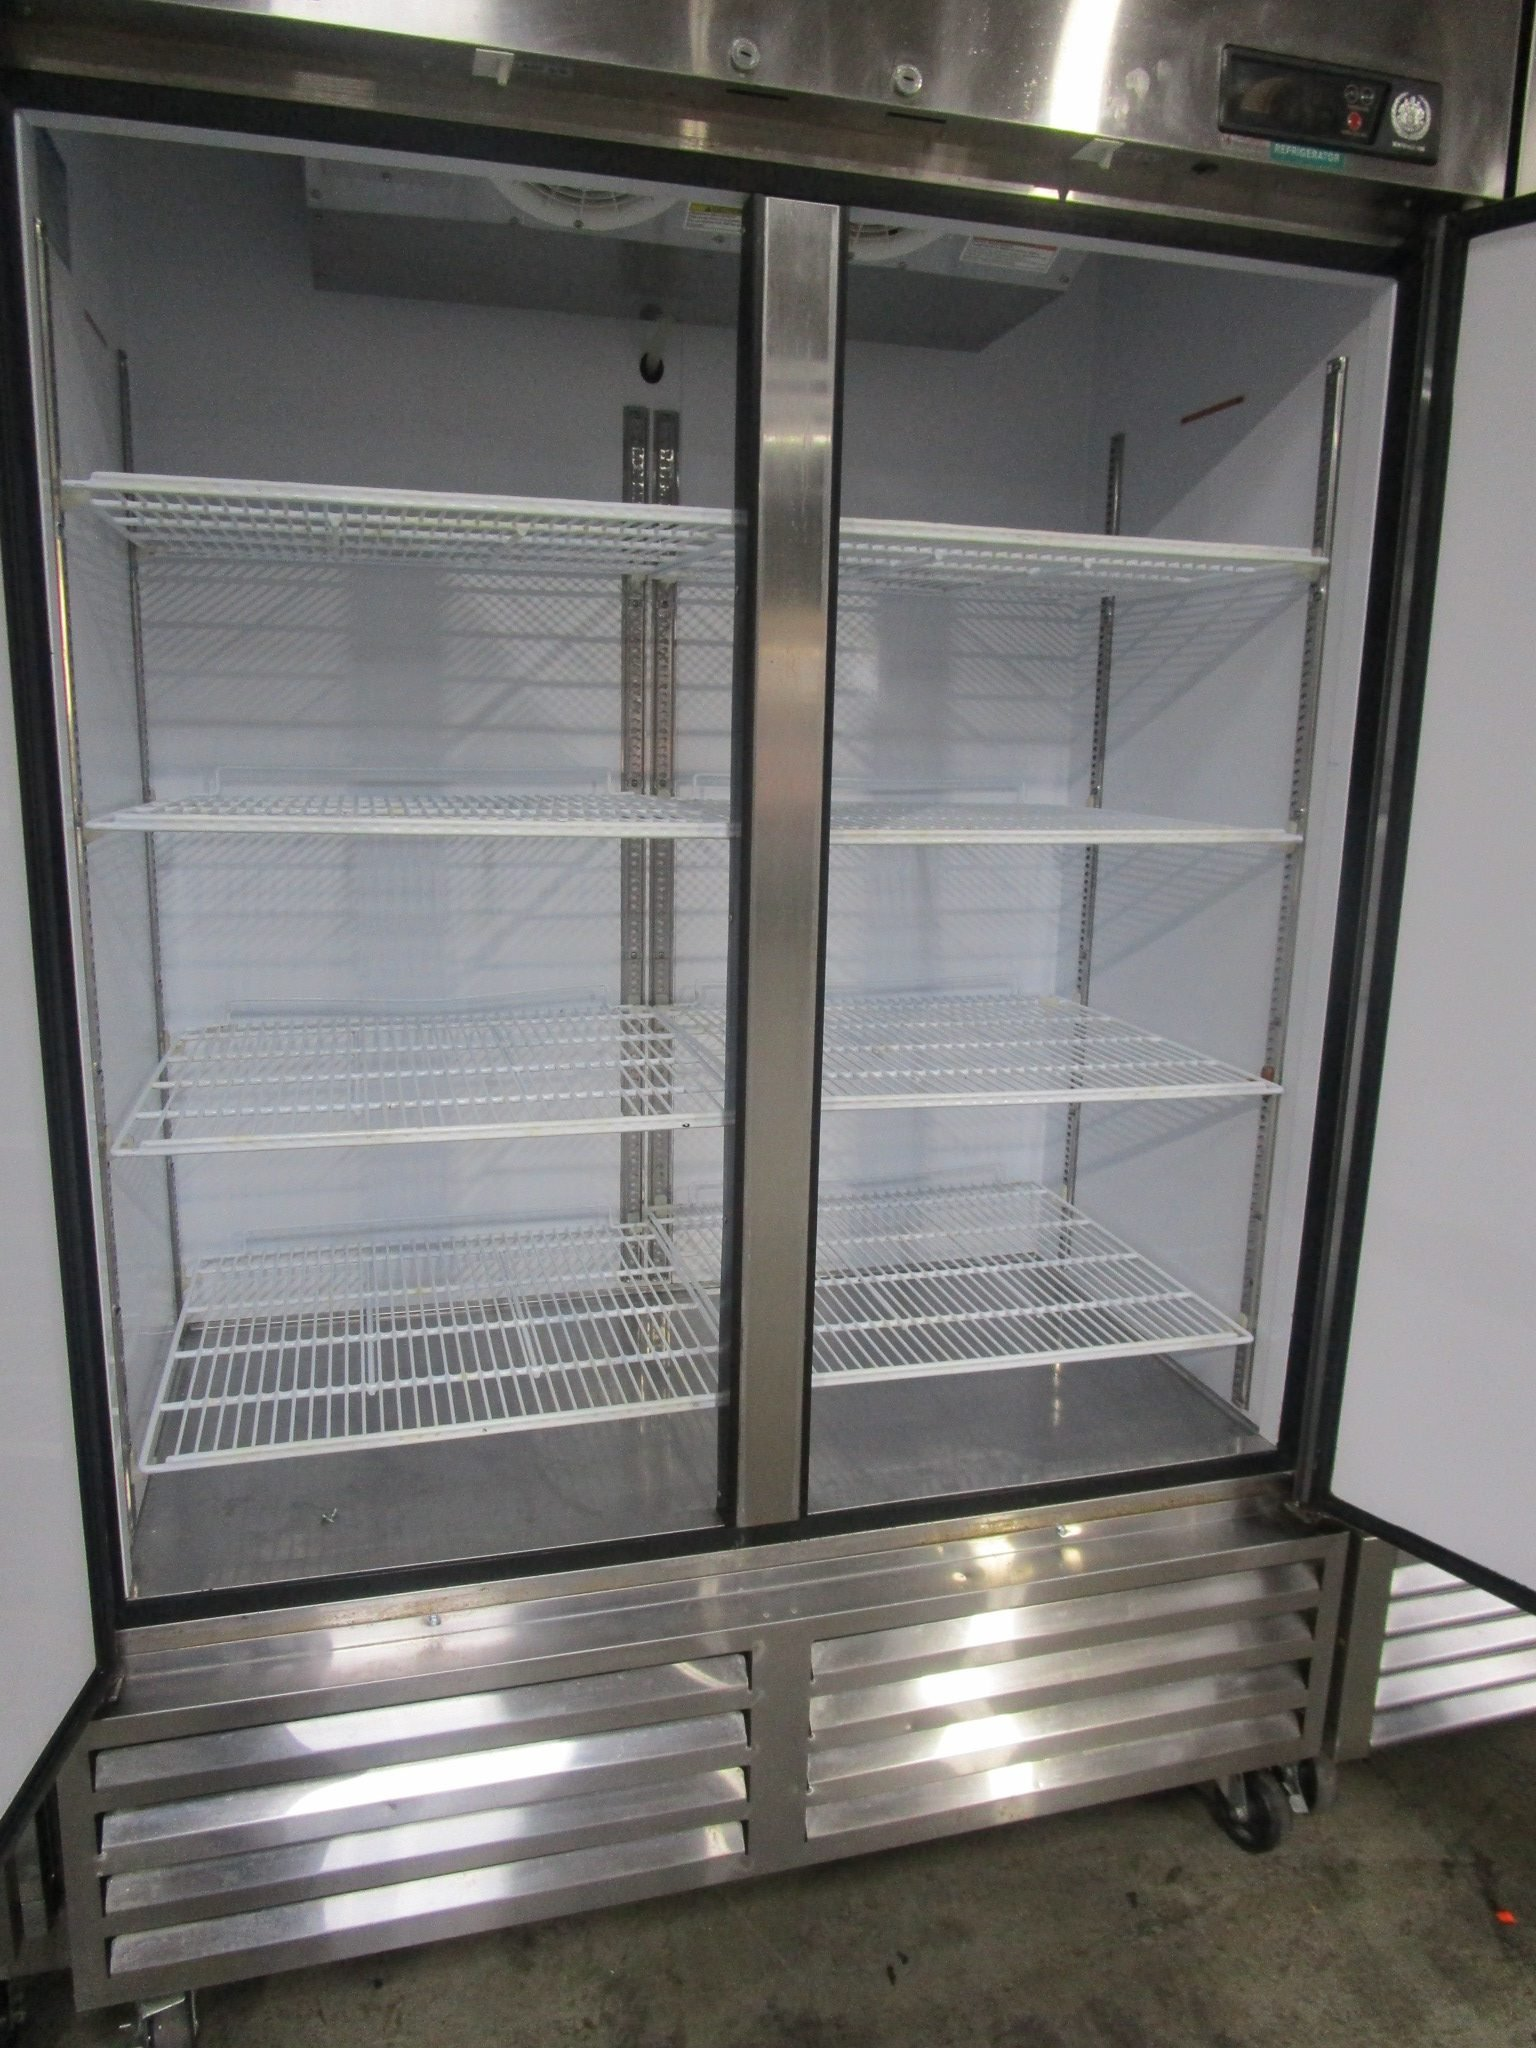 "BEVERAGE AIR KR48-1AS, 54"" STAINLESS STEEL REACH-IN COOLER REFRIGERATOR"